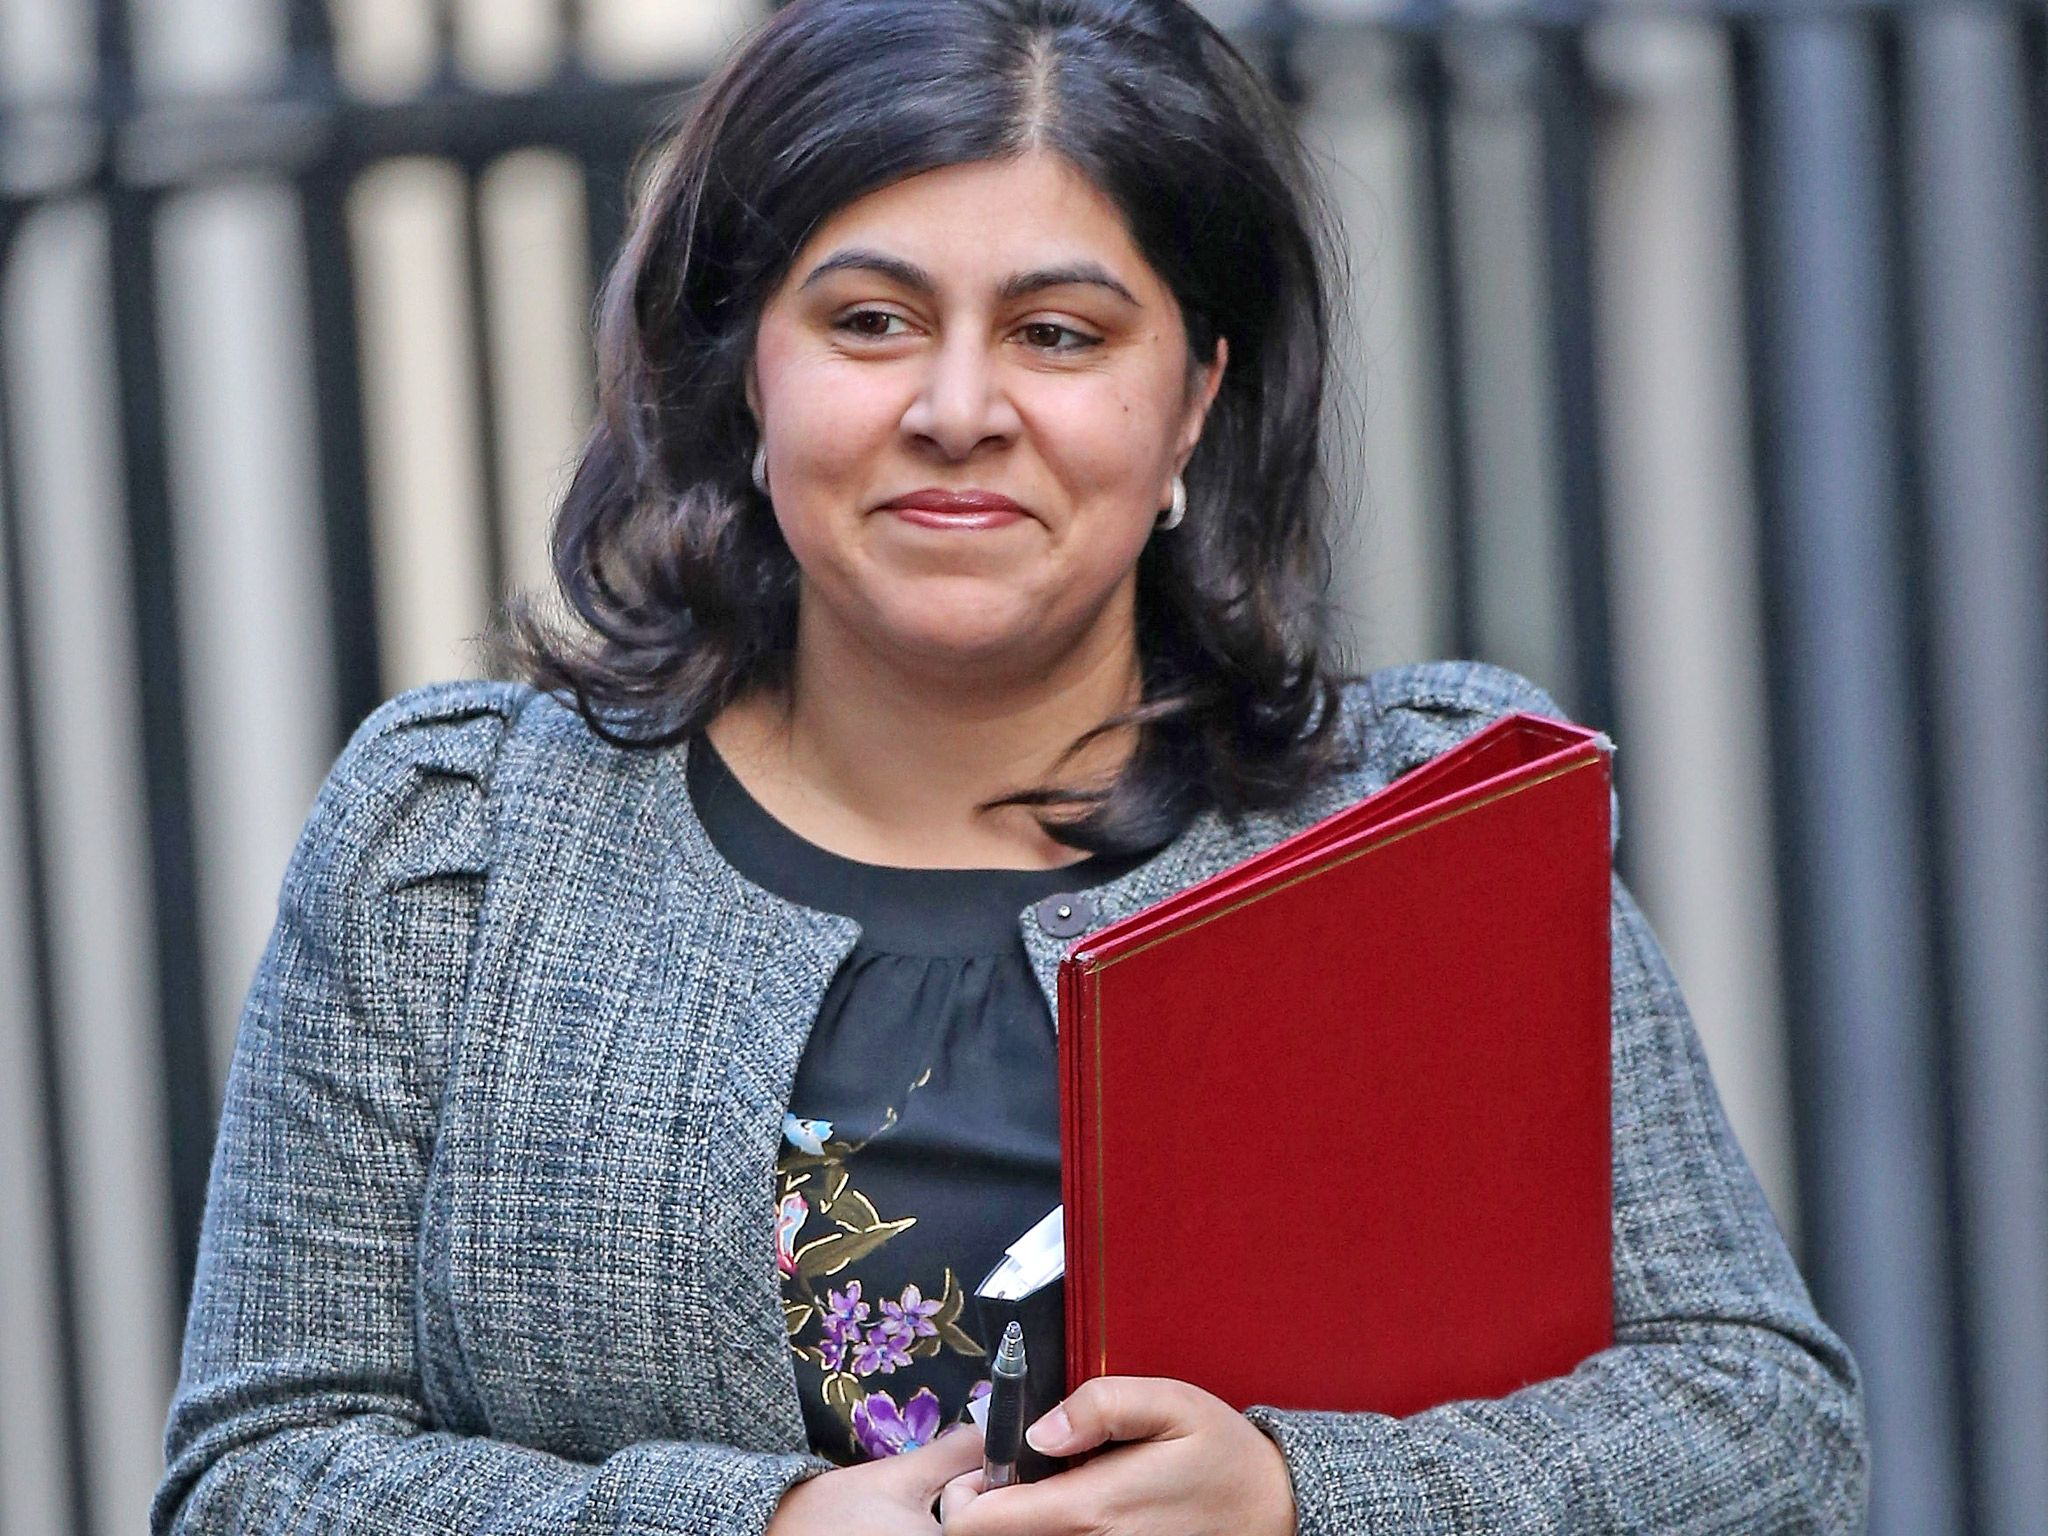 Warsi was a senior Foreign Office minister and the Minister for Faith and Communities.